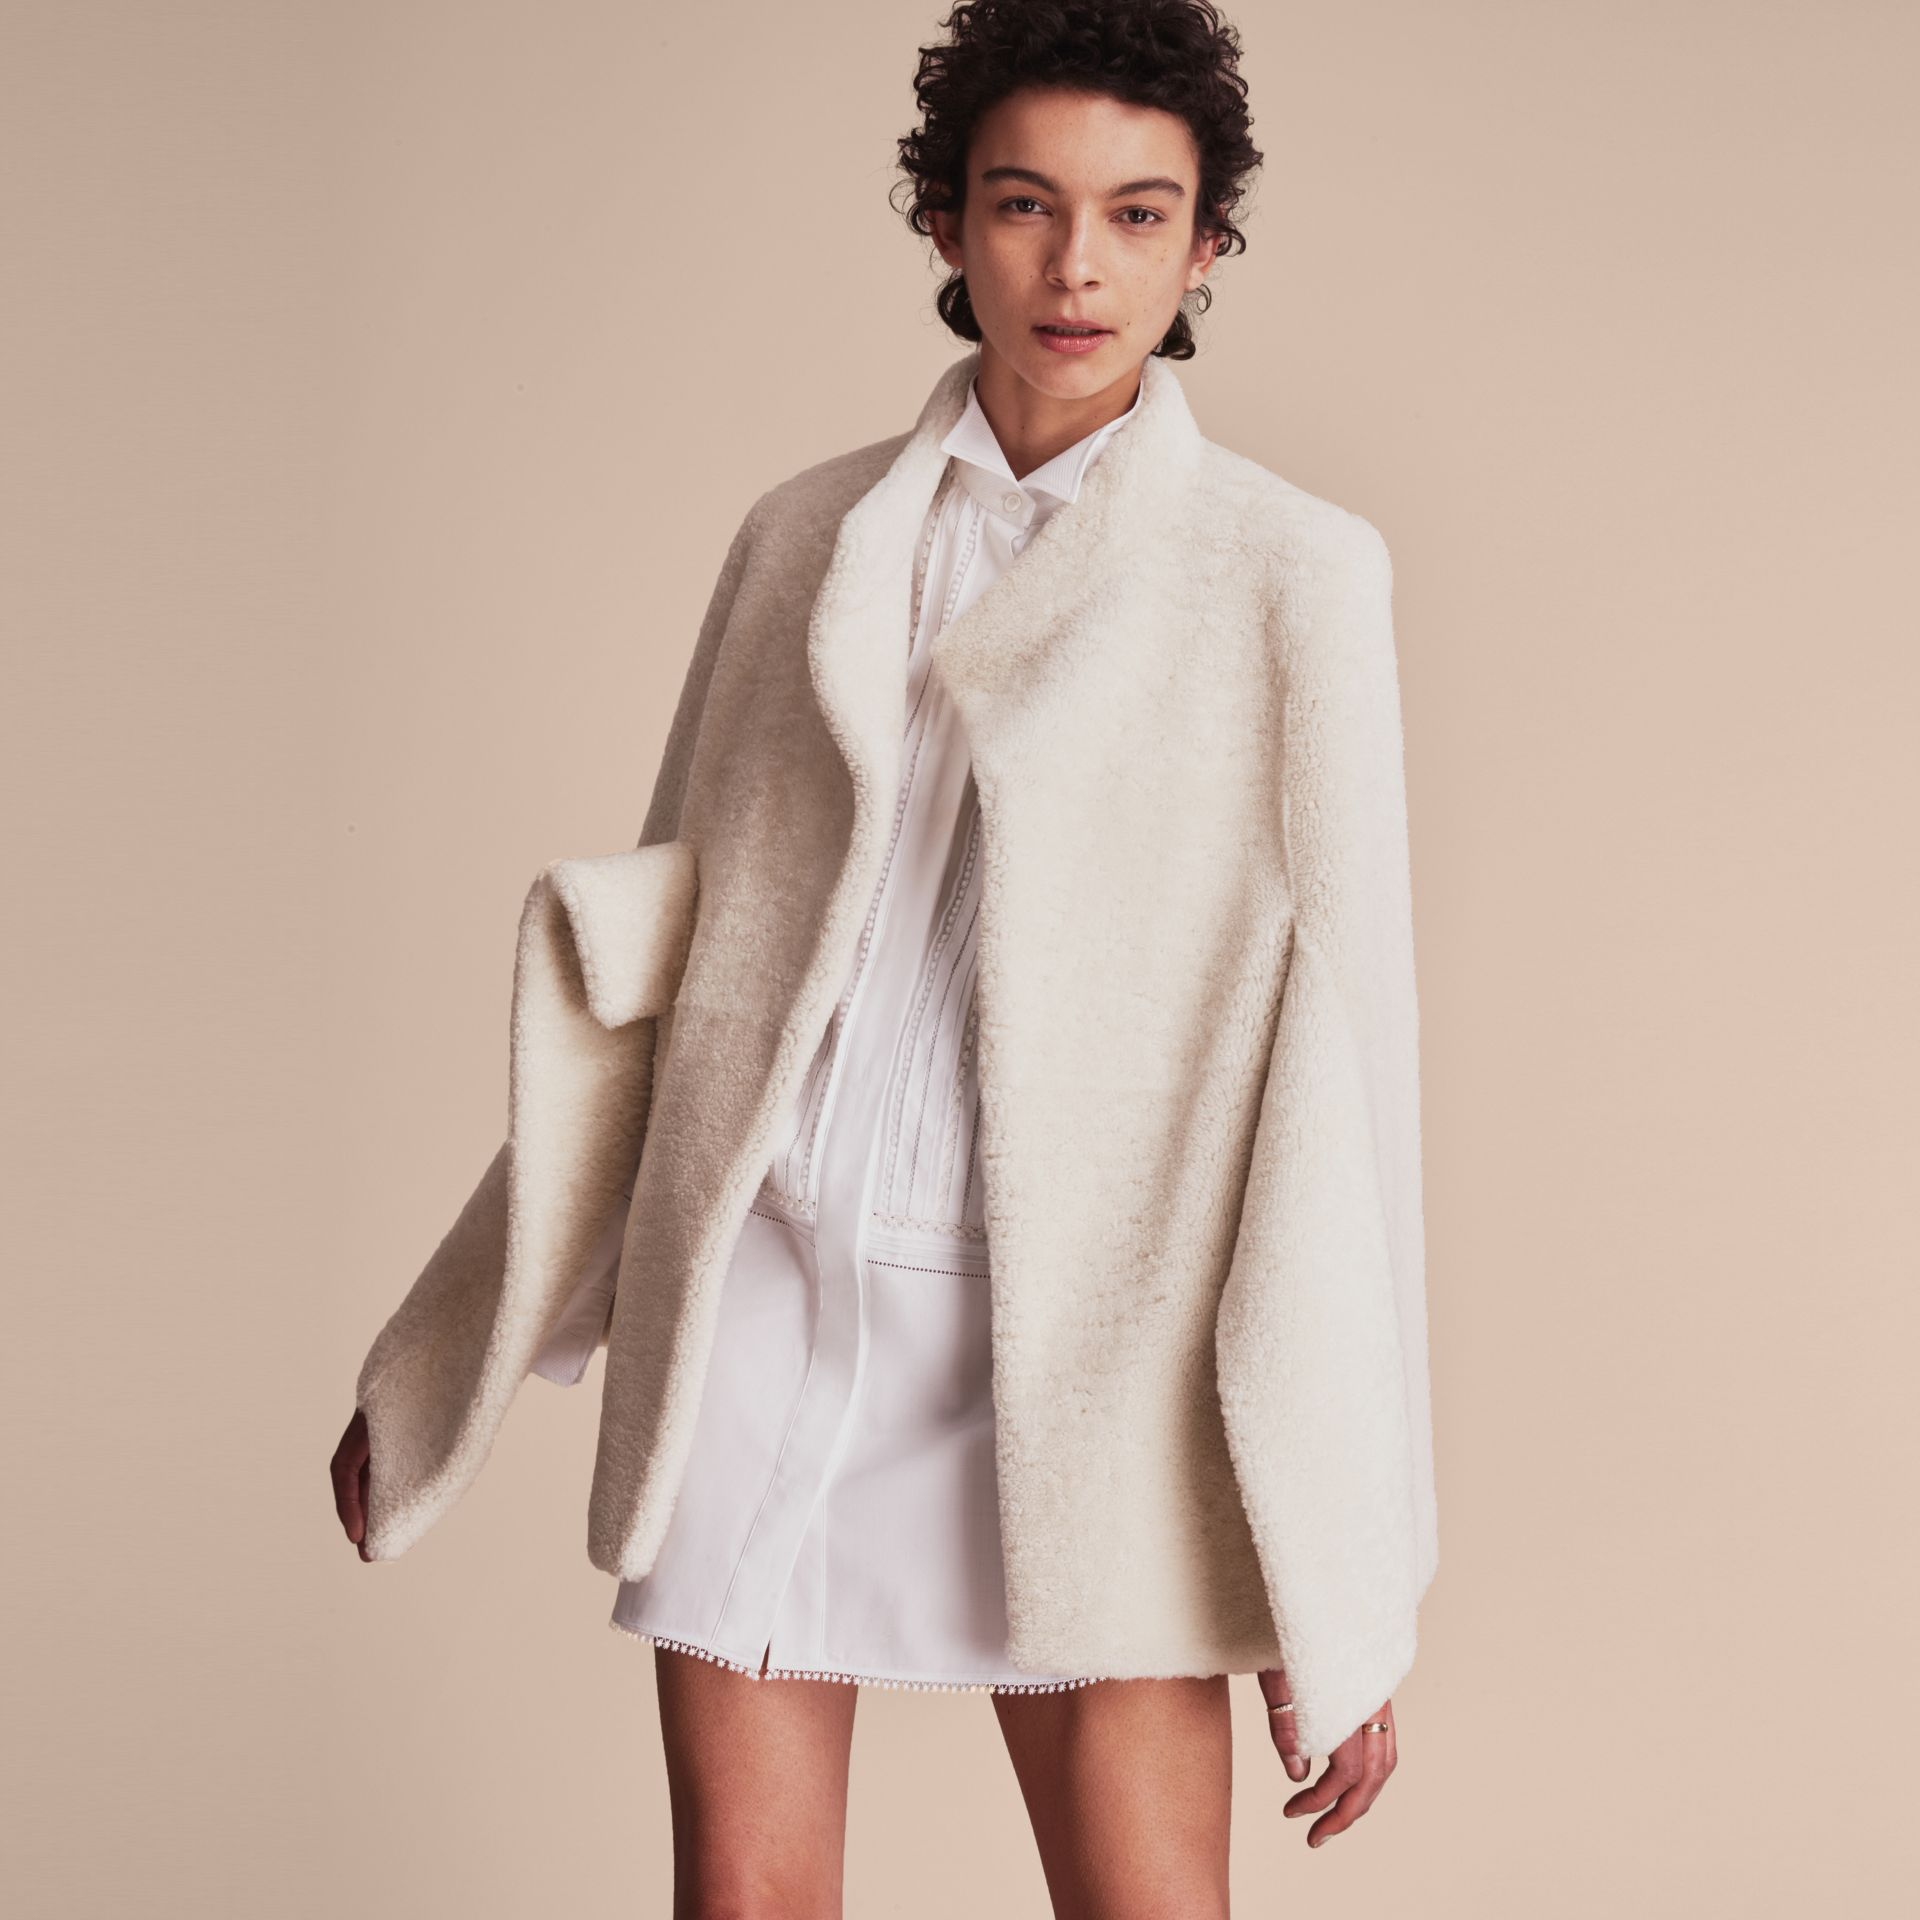 Sculptural Shearling Cape in White - Women | Burberry Canada - gallery image 6